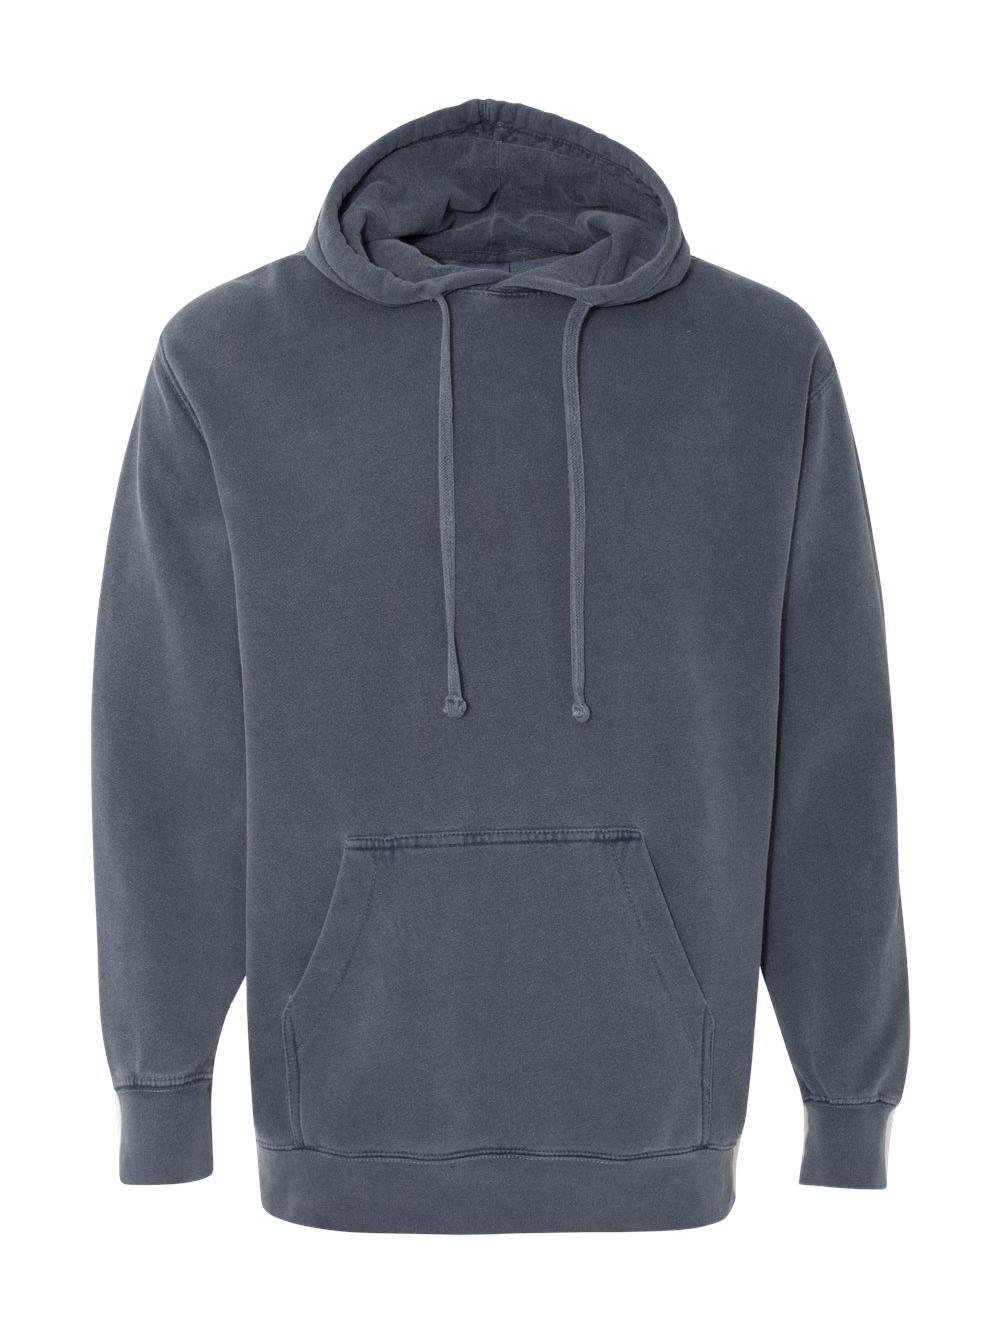 Comfort-Colors-Garment-Dyed-Hooded-Pullover-Sweatshirt-1567 thumbnail 12